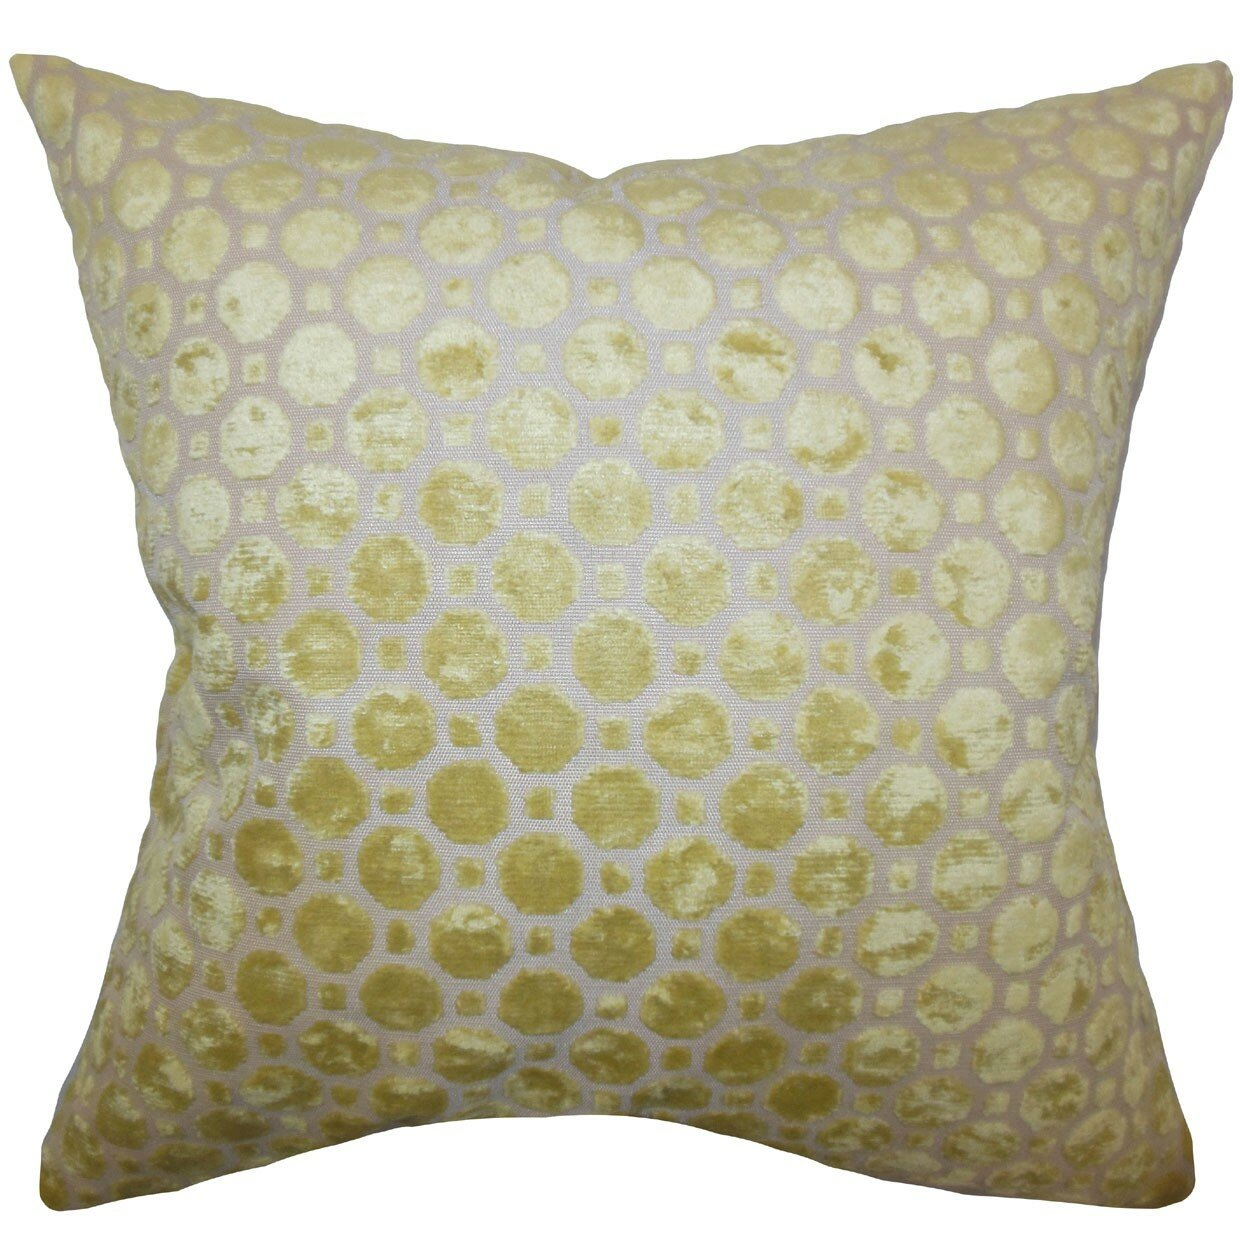 Wayfair Decorative Pillow Covers : The Pillow Collection Cushion Cover & Reviews Wayfair UK